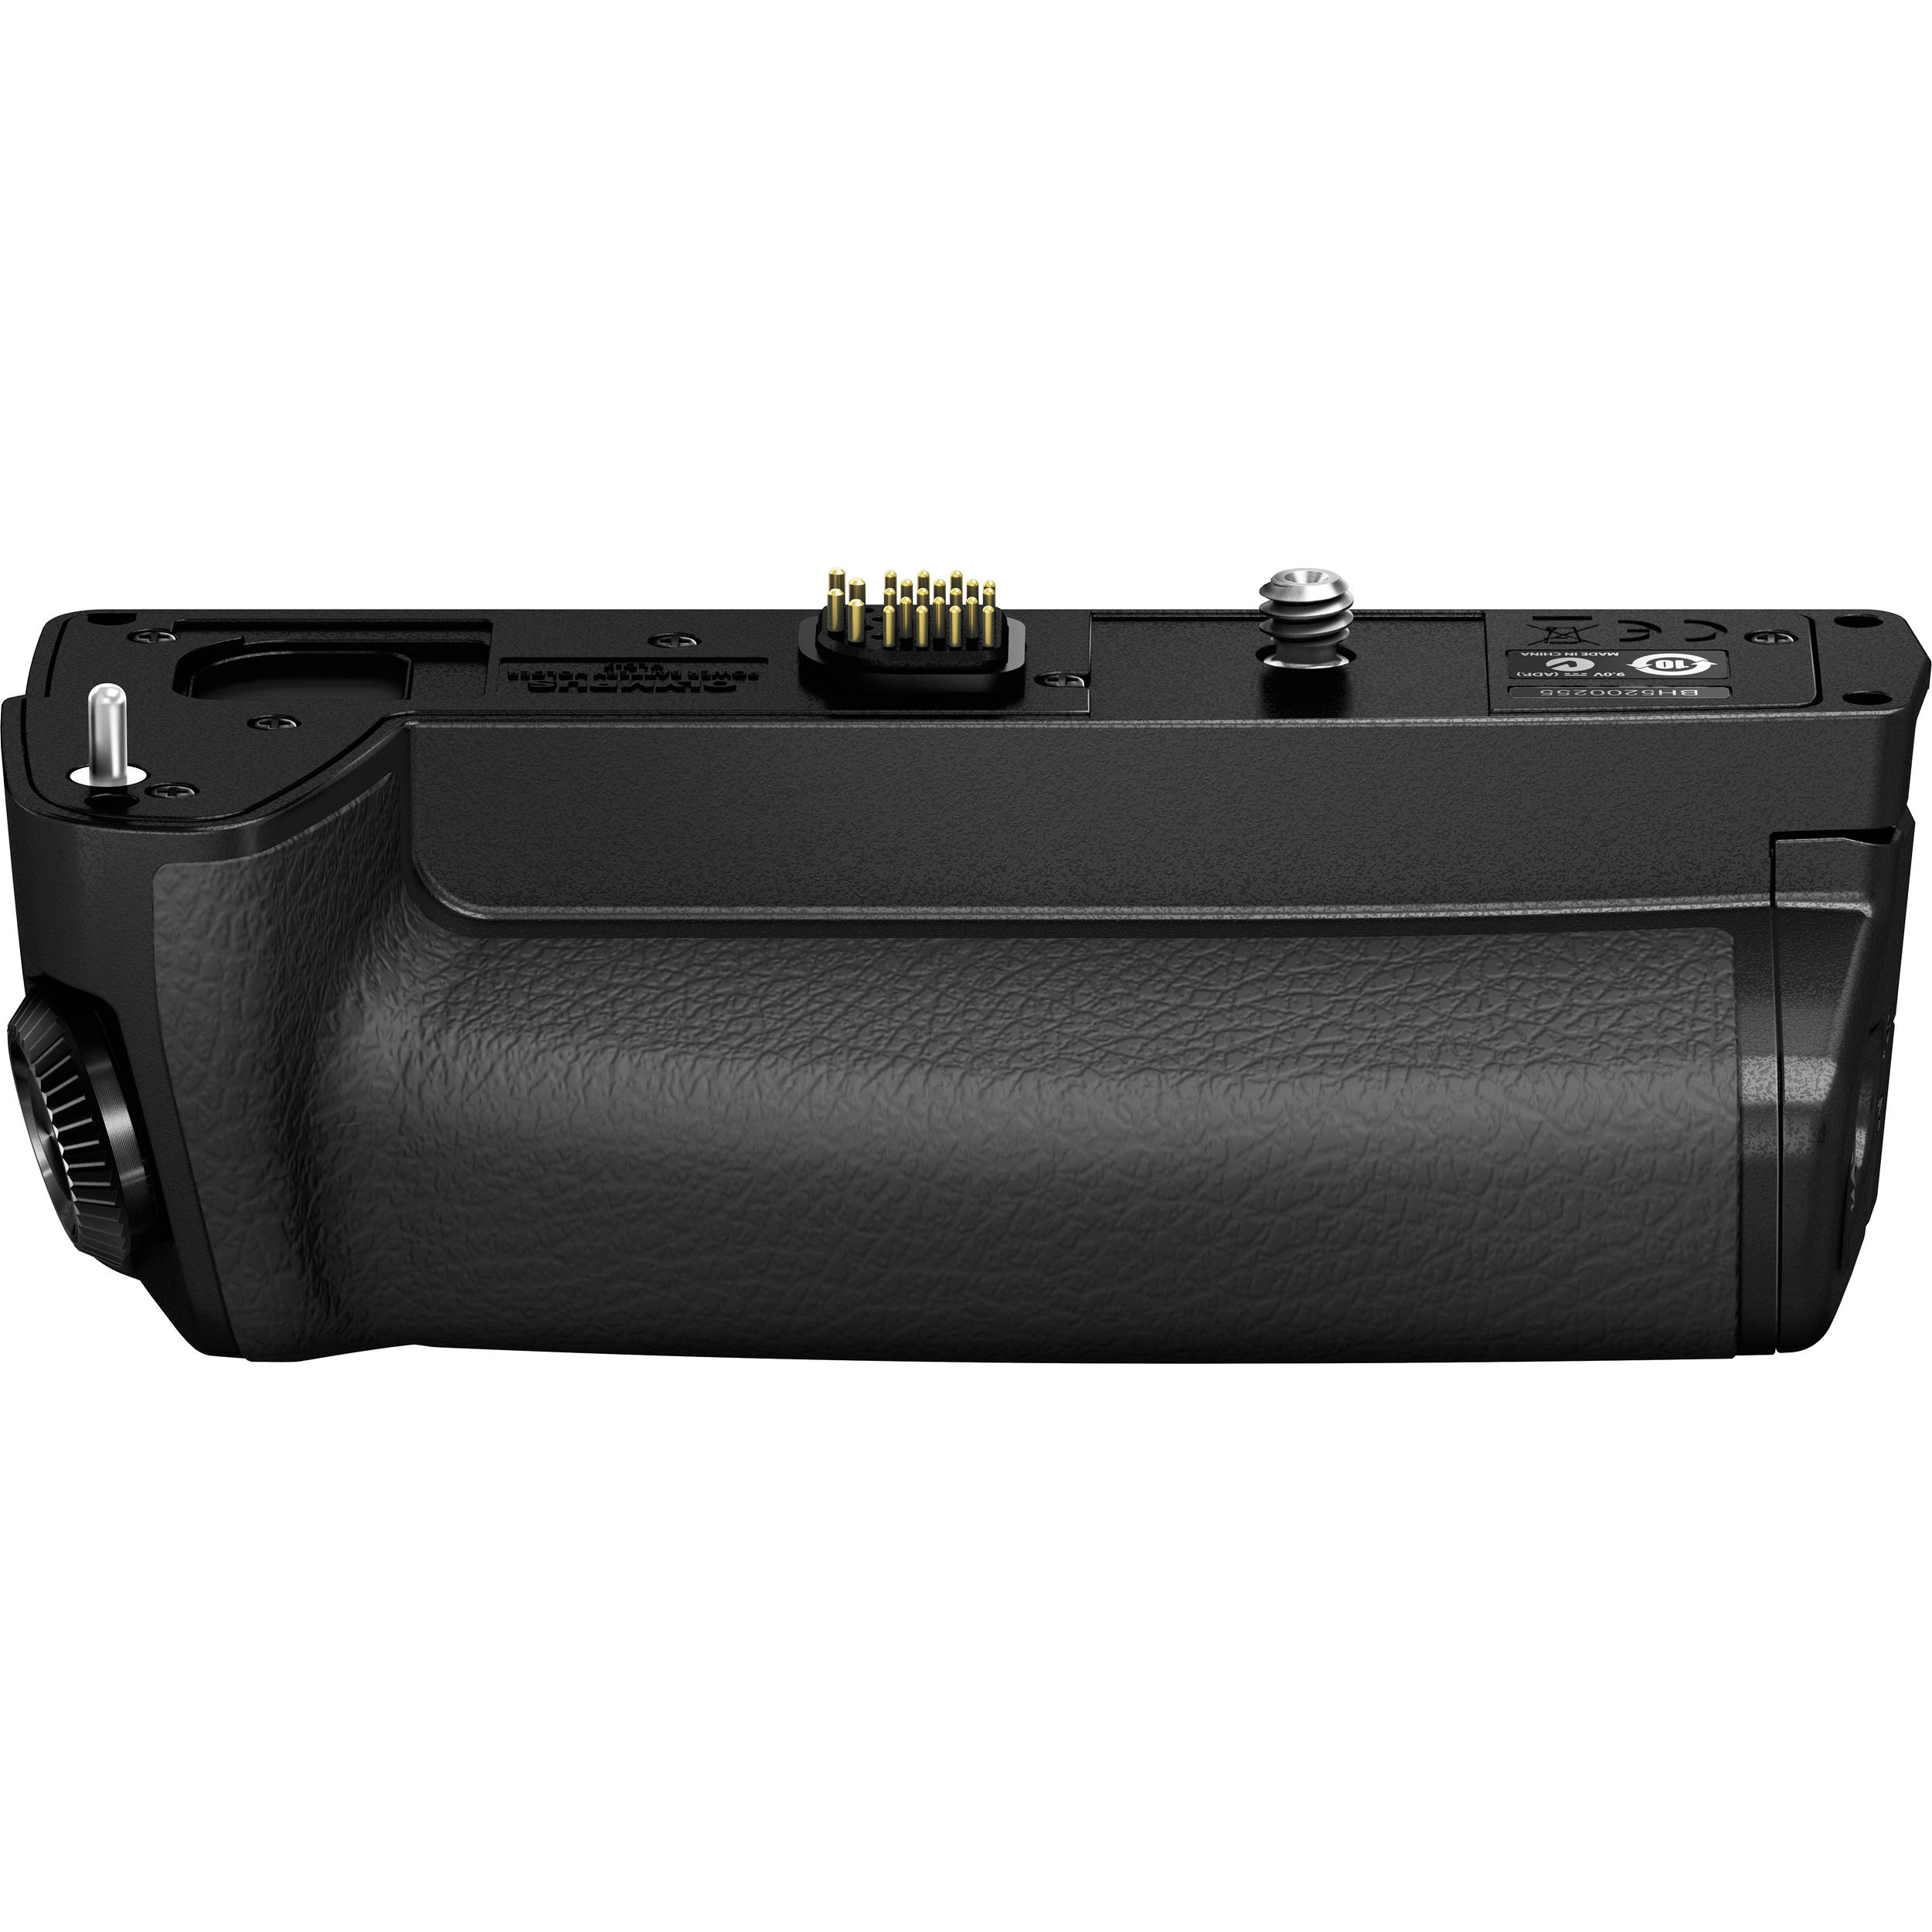 olympus_v328140bu000_hld_7_battery_holder_black_1003637